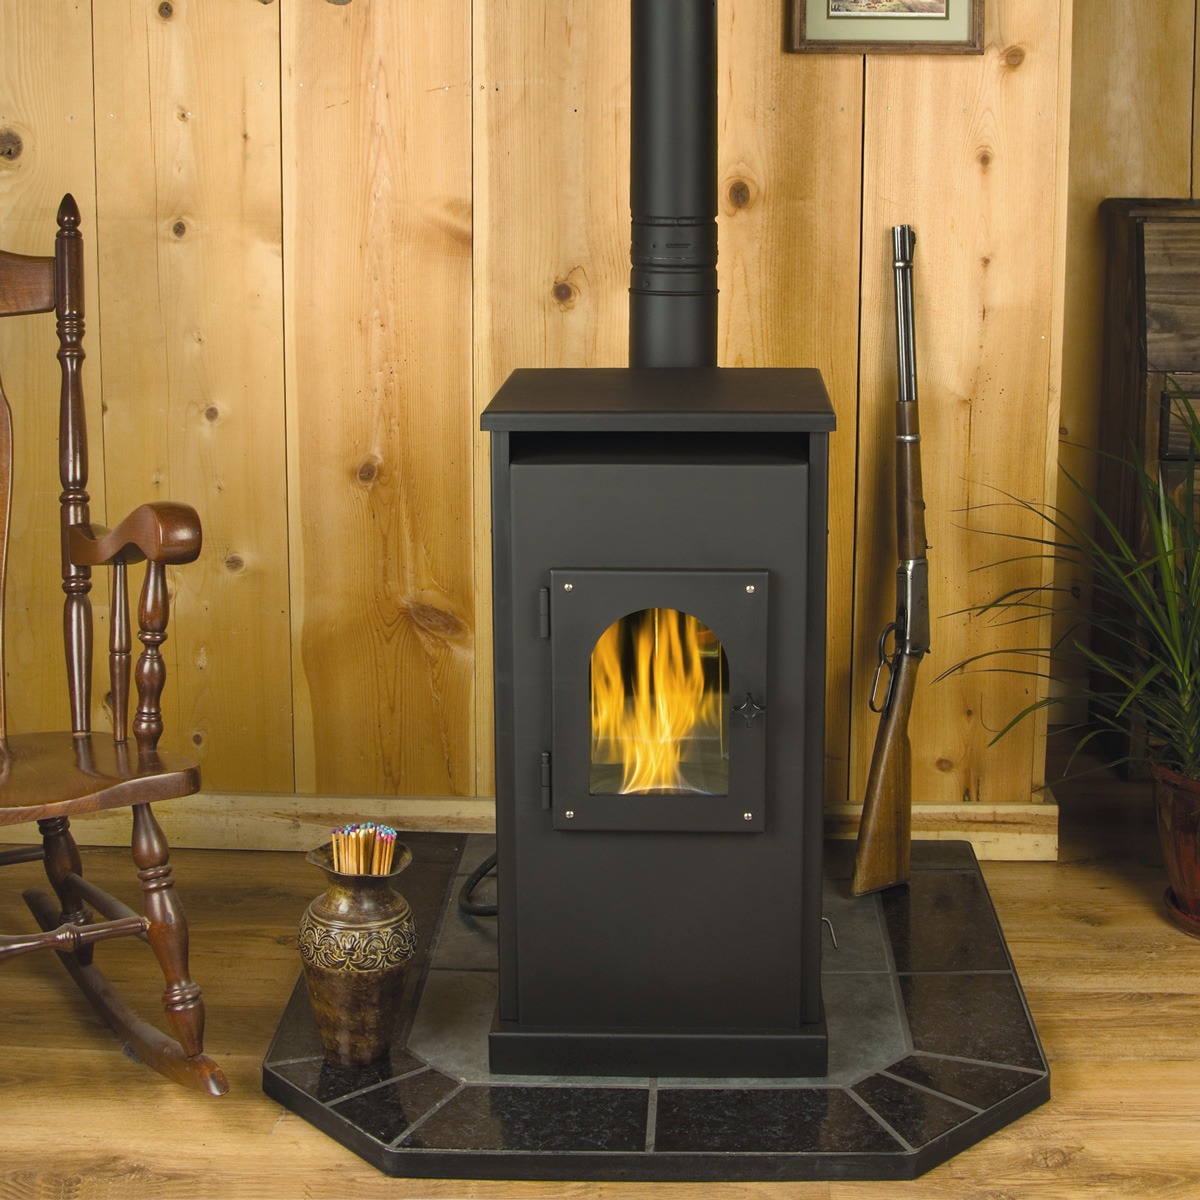 Arctic Oil Stove High Effeciency Stove From Kuma Stoves